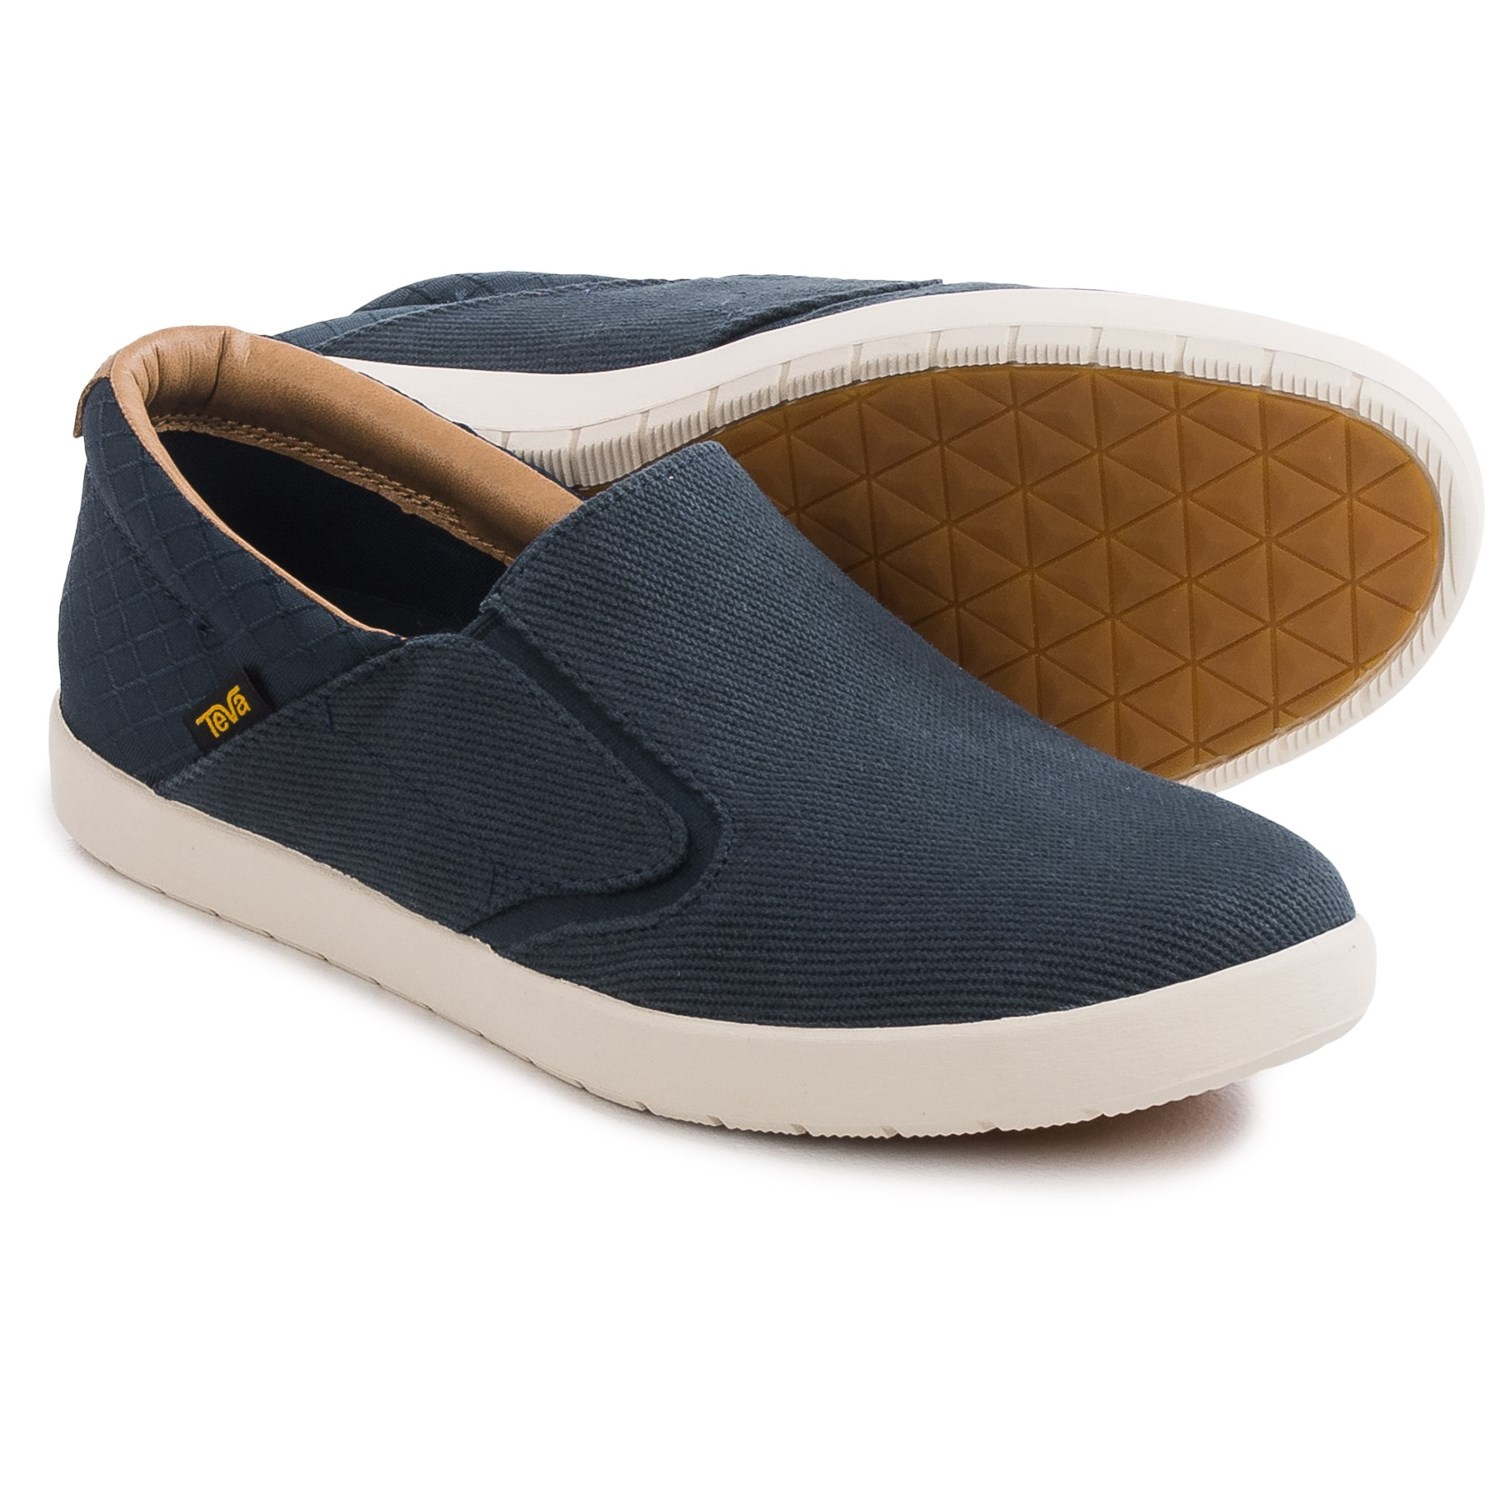 Men's Slip-ons: Free Shipping on orders over $45 at janydo.ml - Your Online Men's Slip-ons Store! Get 5% in rewards with Club O! Overstock uses cookies to ensure you get the best experience on our site. Men's Crevo Boonedock II Slip-on Shoe Black Canvas. SALE.